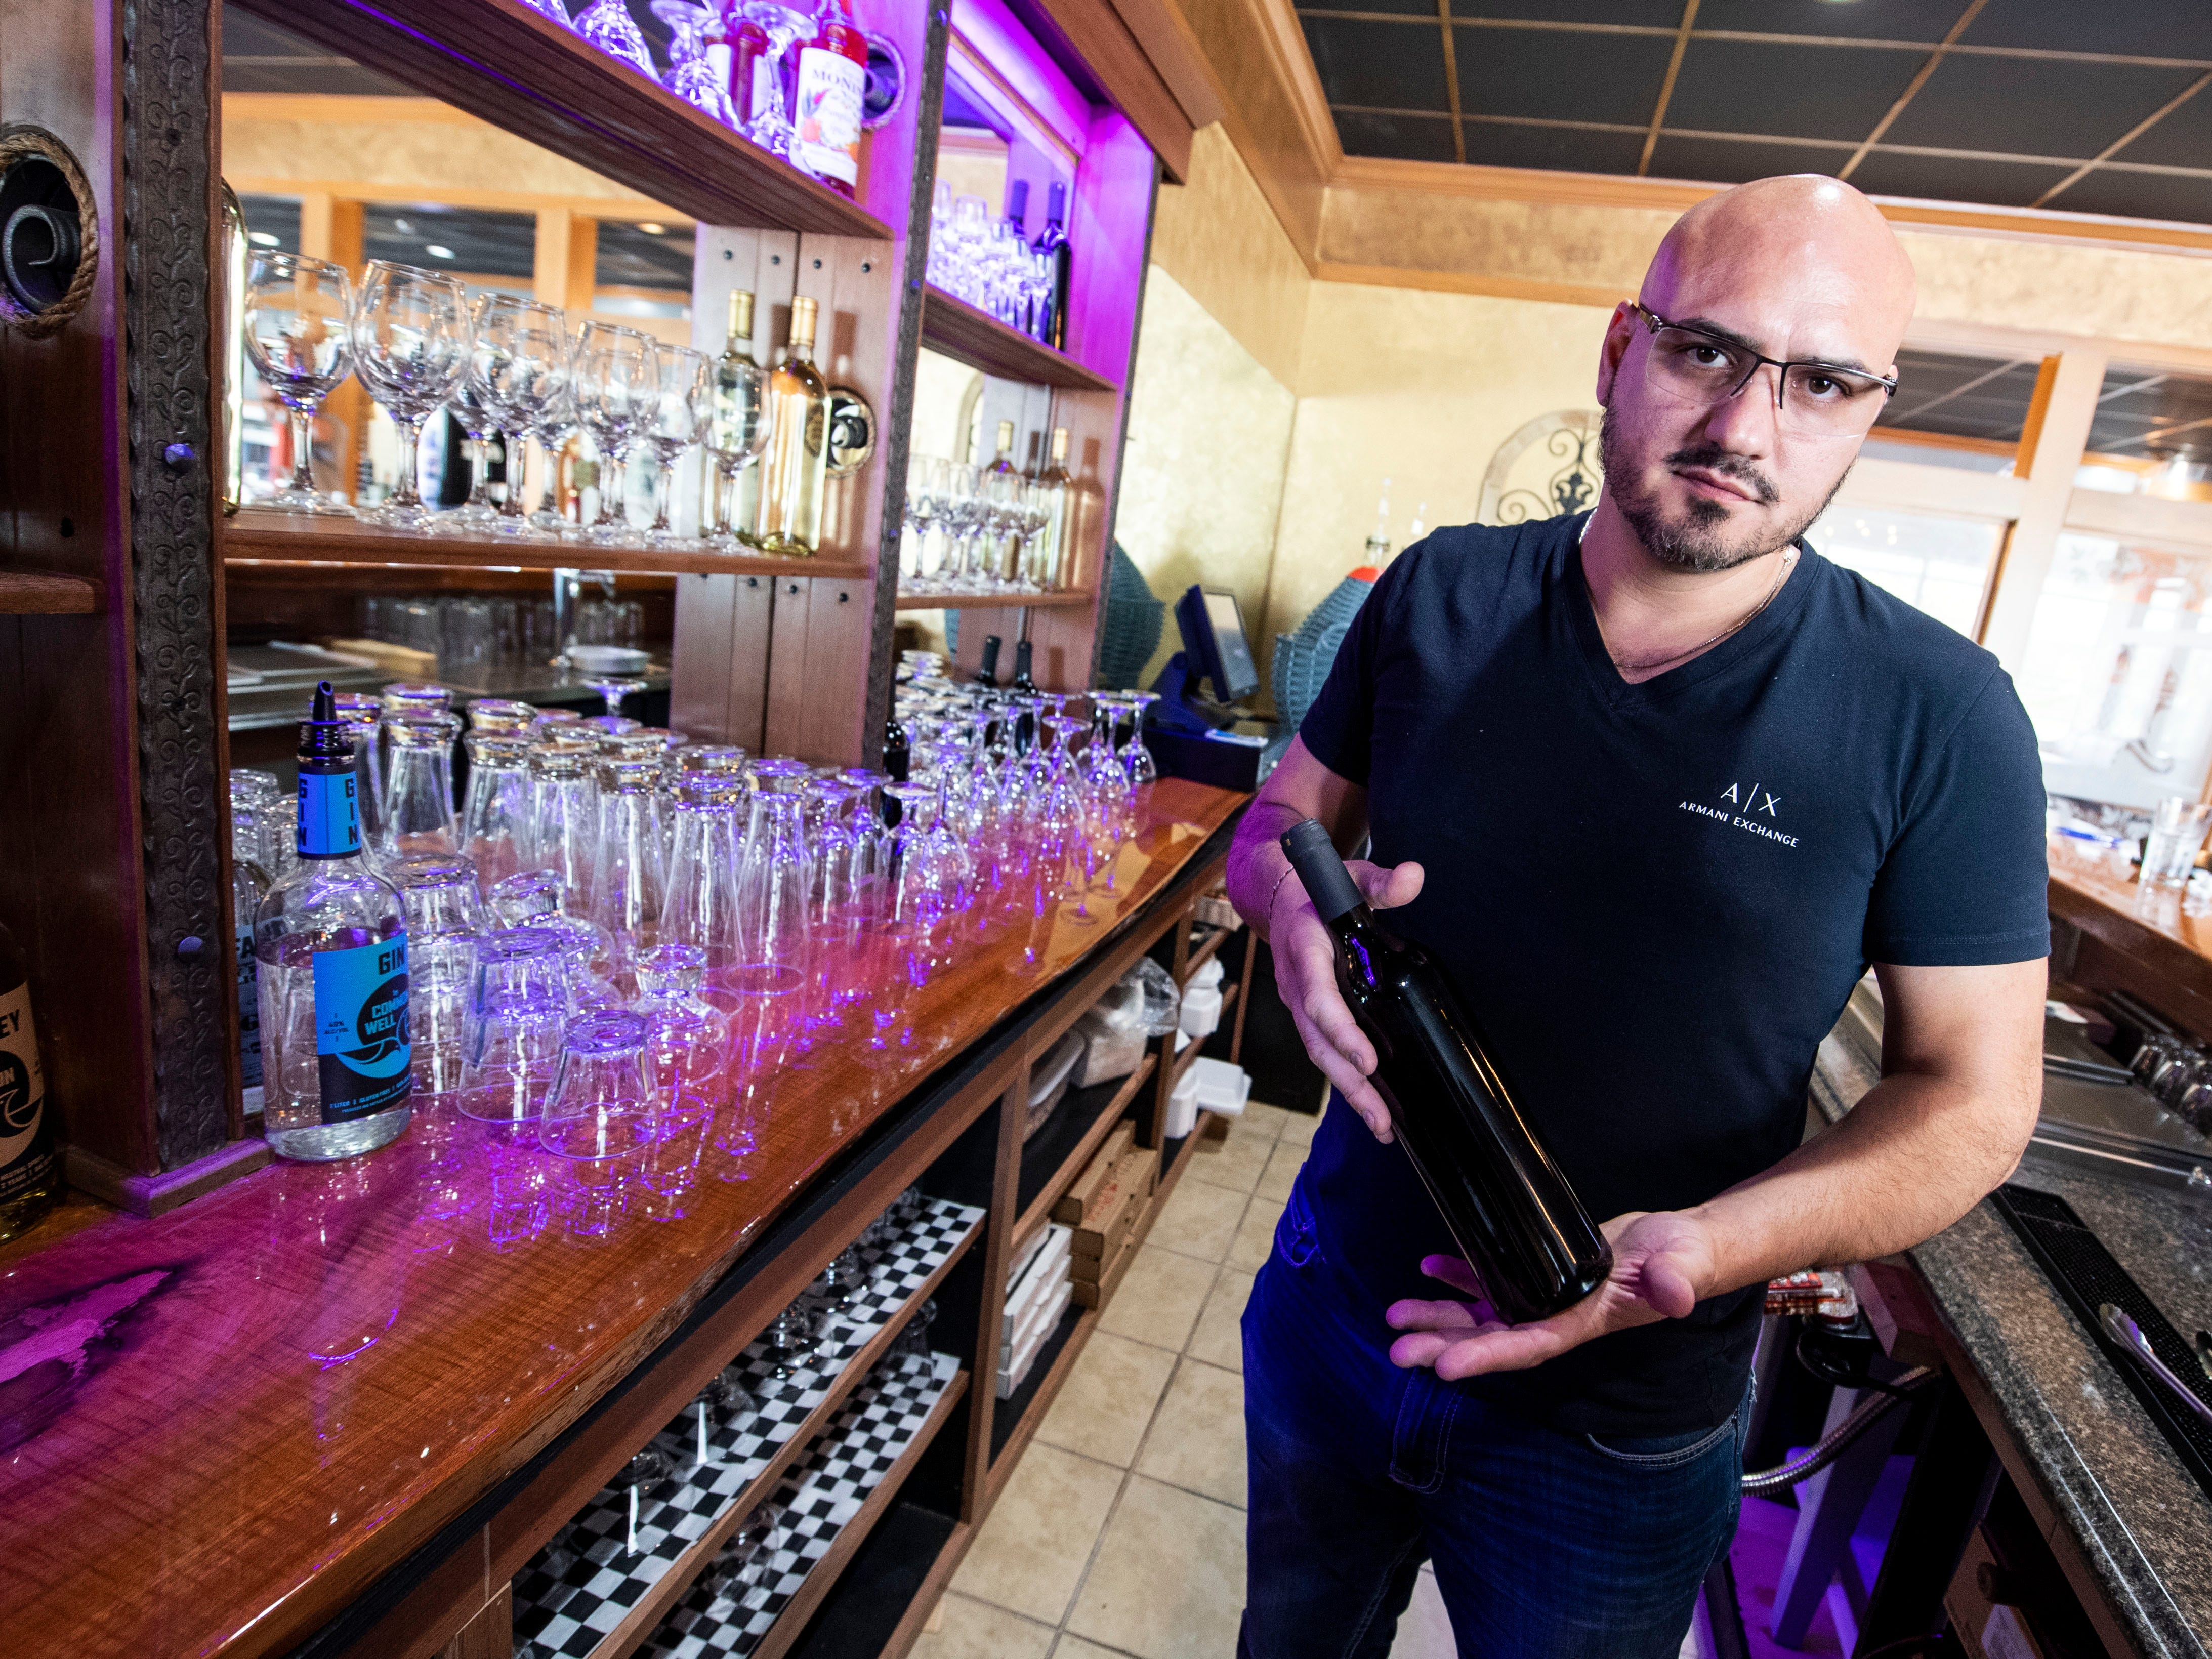 Vito Serradella, who co-owns Wood Fire Italian Grill, holds up a bottled of wine that was made in house, right beside the bar, Wednesday, Oct. 10, 2018. The restaurant, which opened at the beginning of this year, has added on a bar, where they make their own wine to serve.